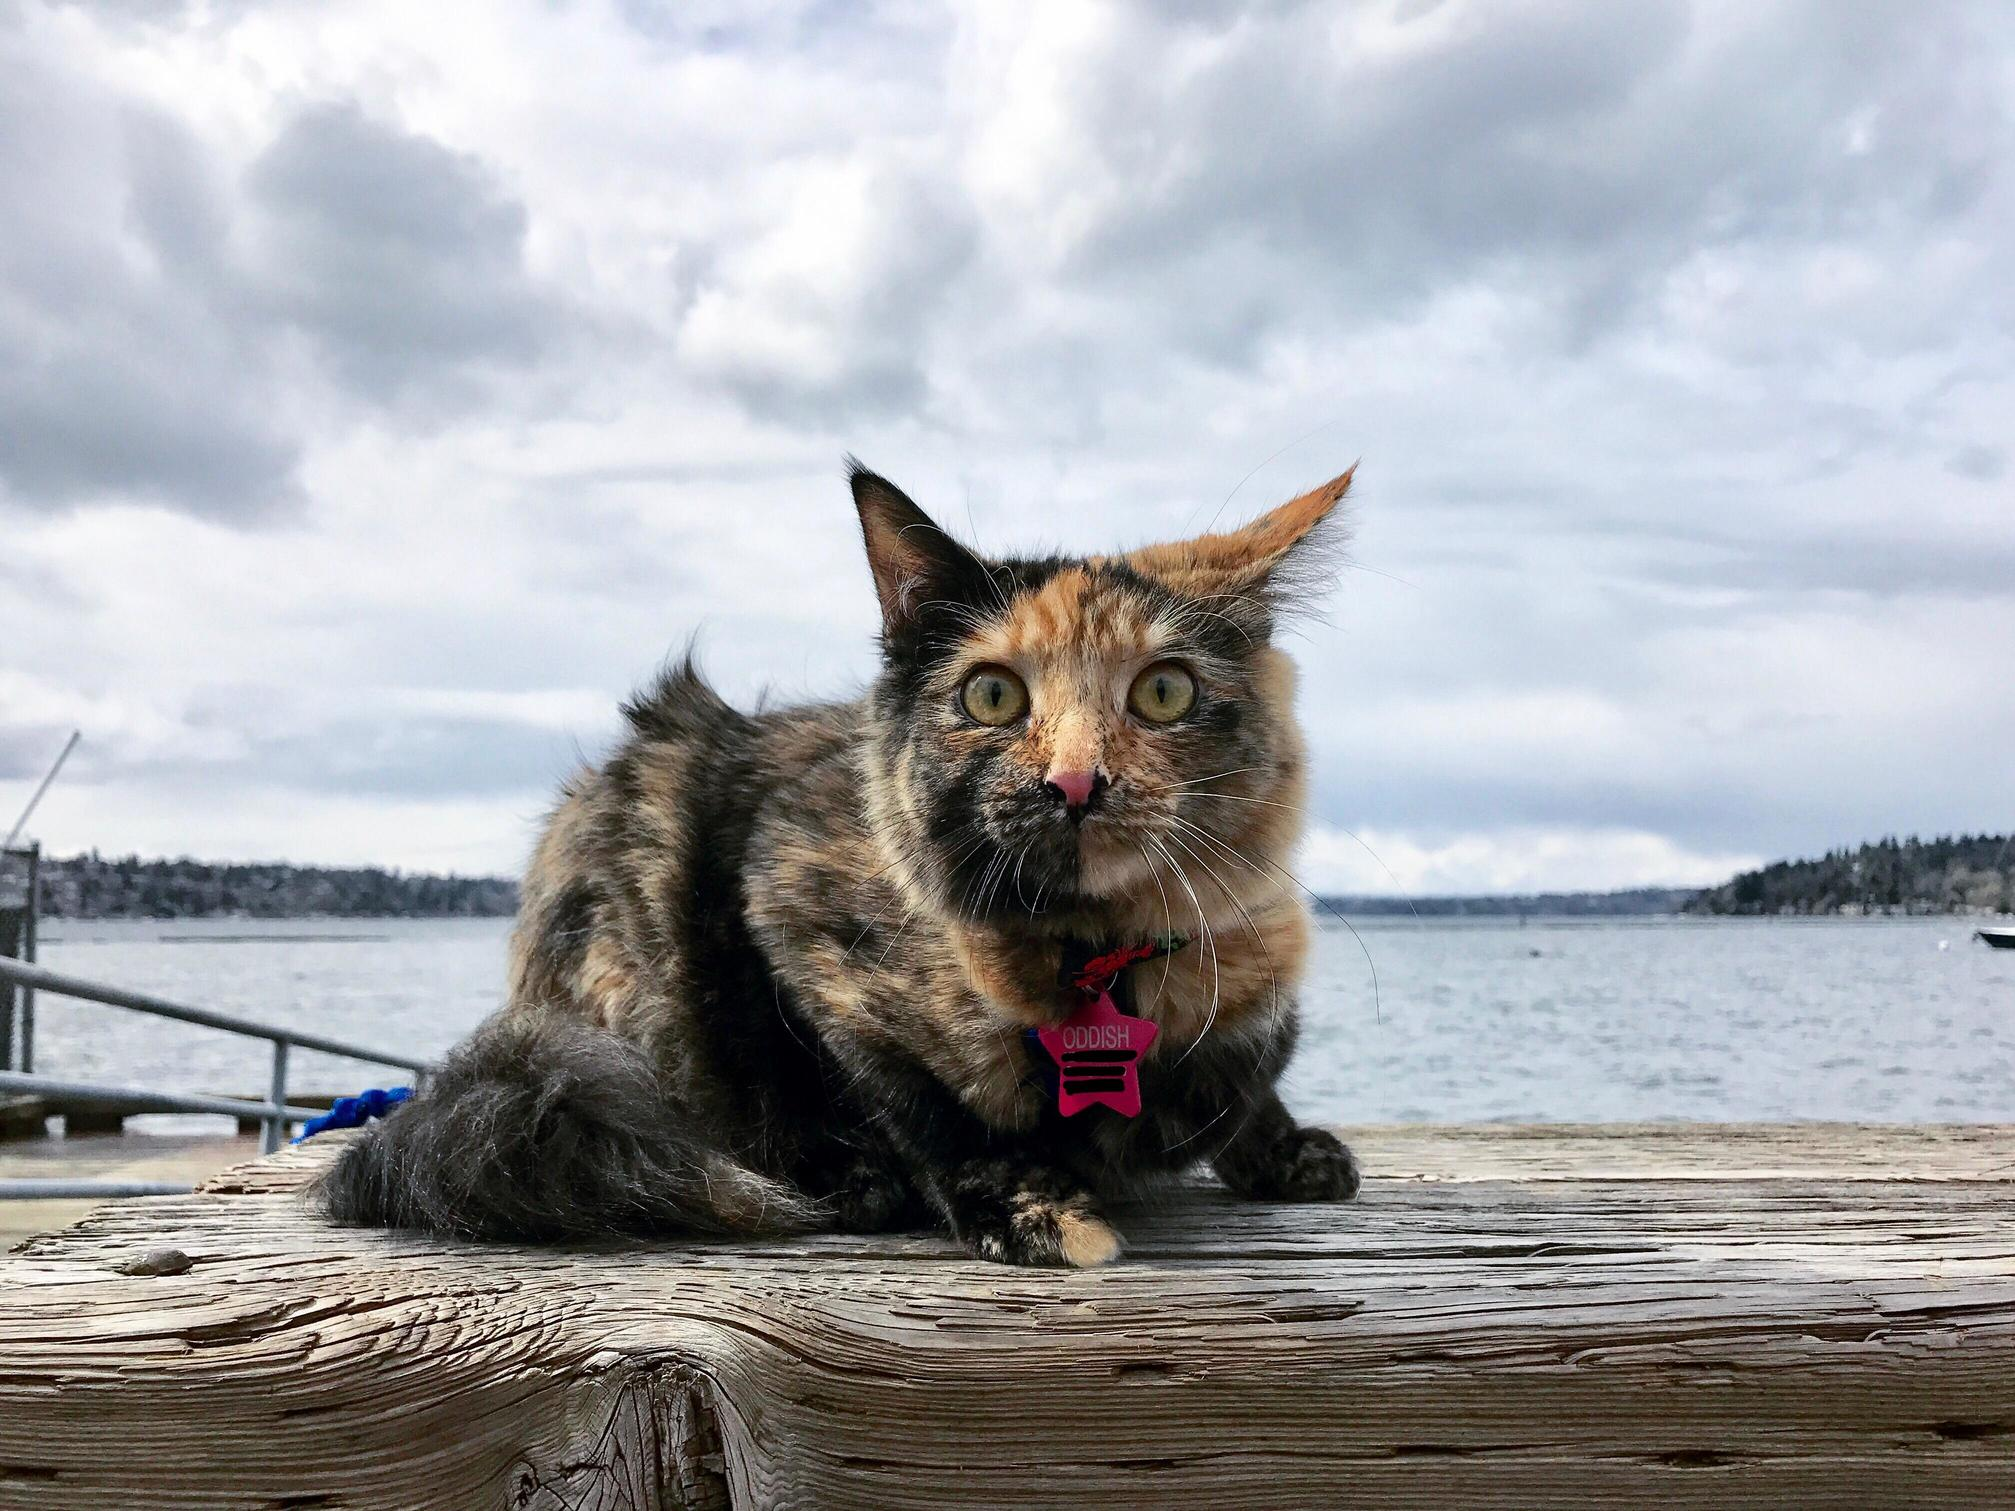 Her first day at the lake